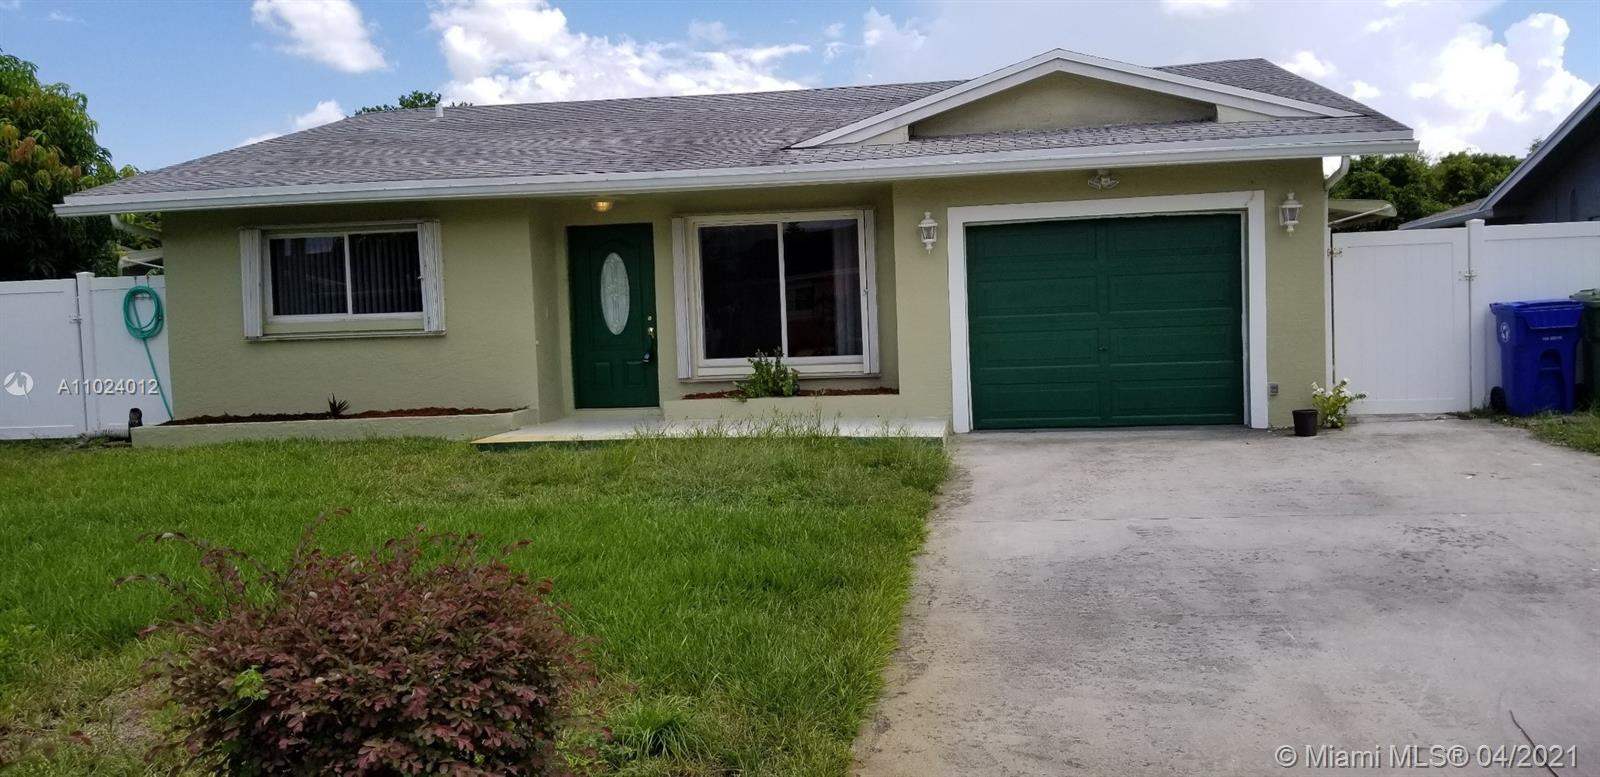 Nice 3 bedroom 2 bath home with garage. Lots of living space. New floors. Cul de sac. House has 2